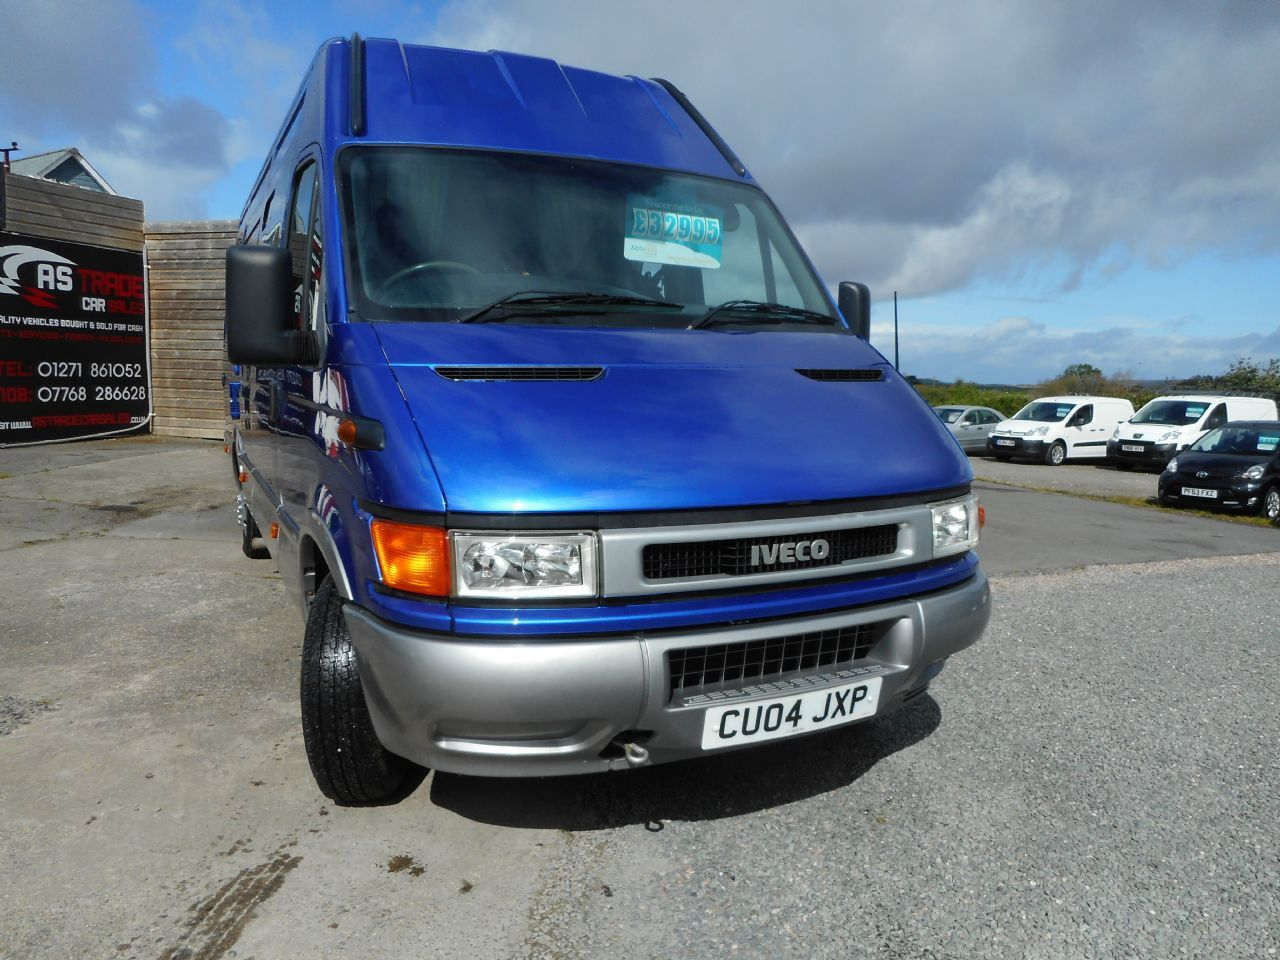 IVECODAILY35S12D W/B 3450 for sale